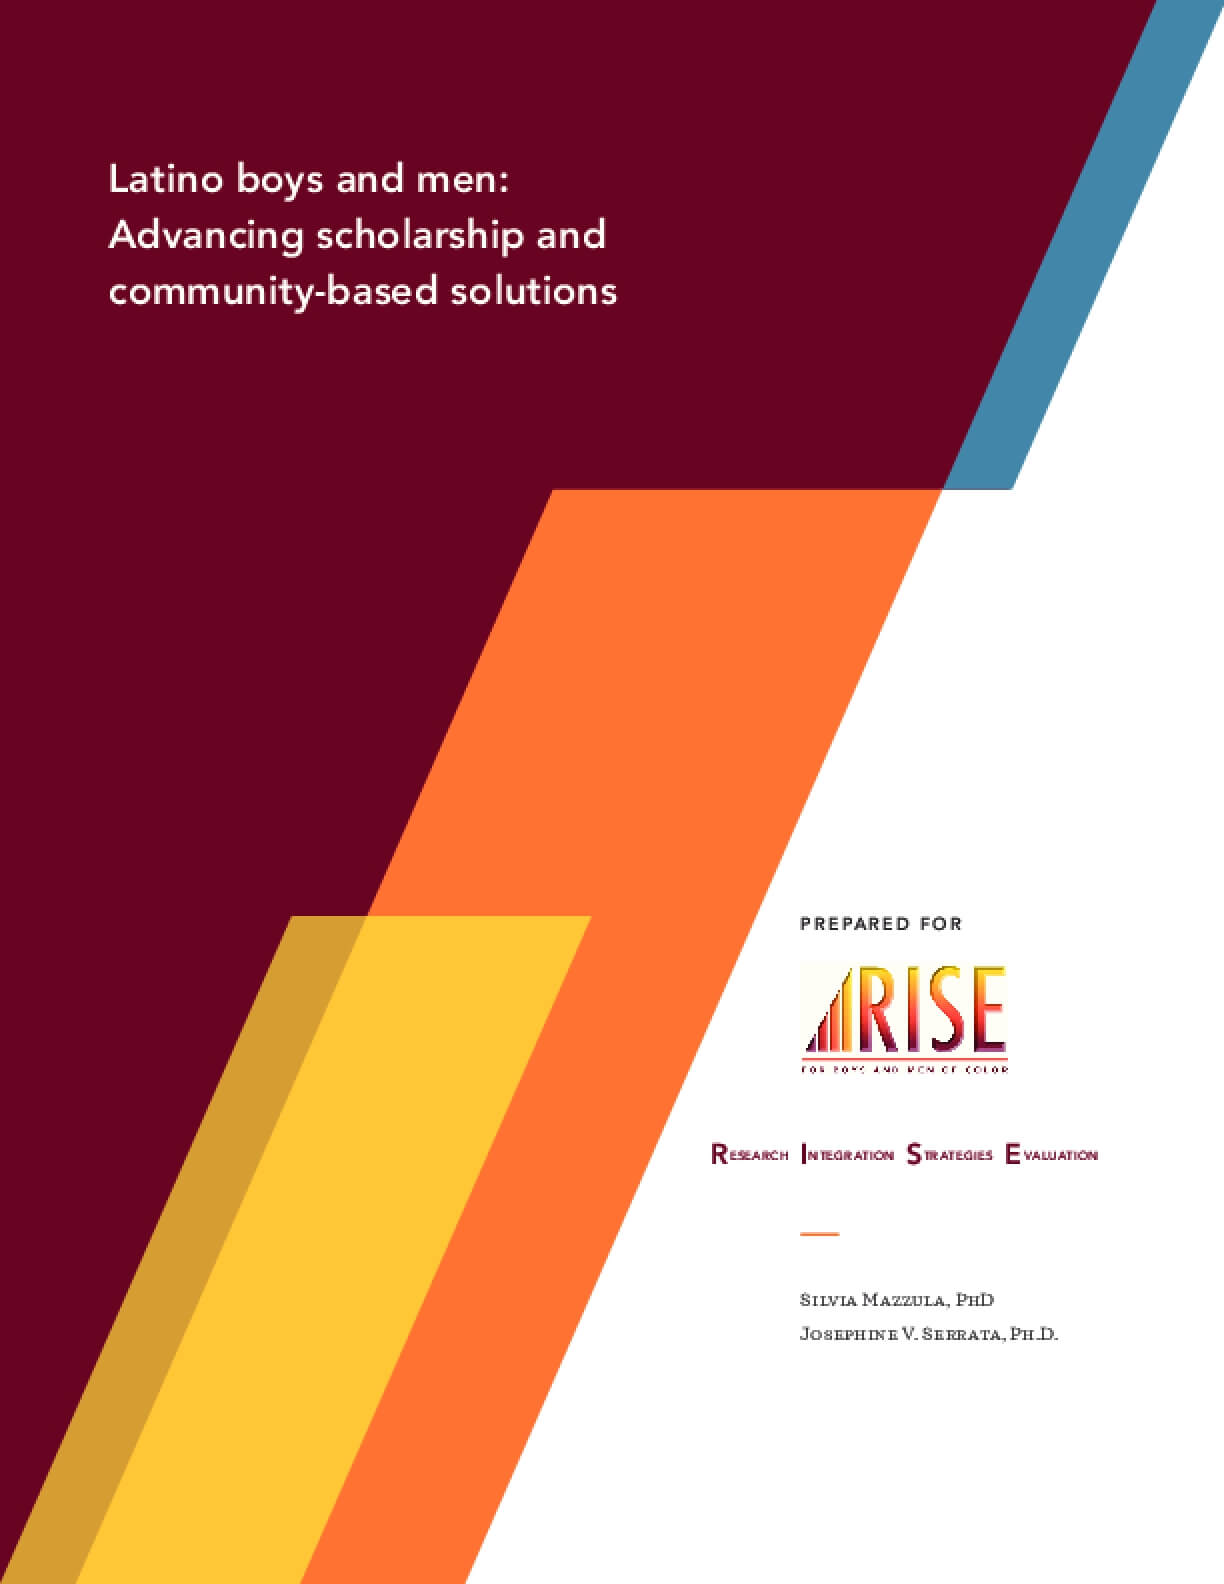 Latino Boys and Men: Advancing Scholarship and Community-Based Solutions